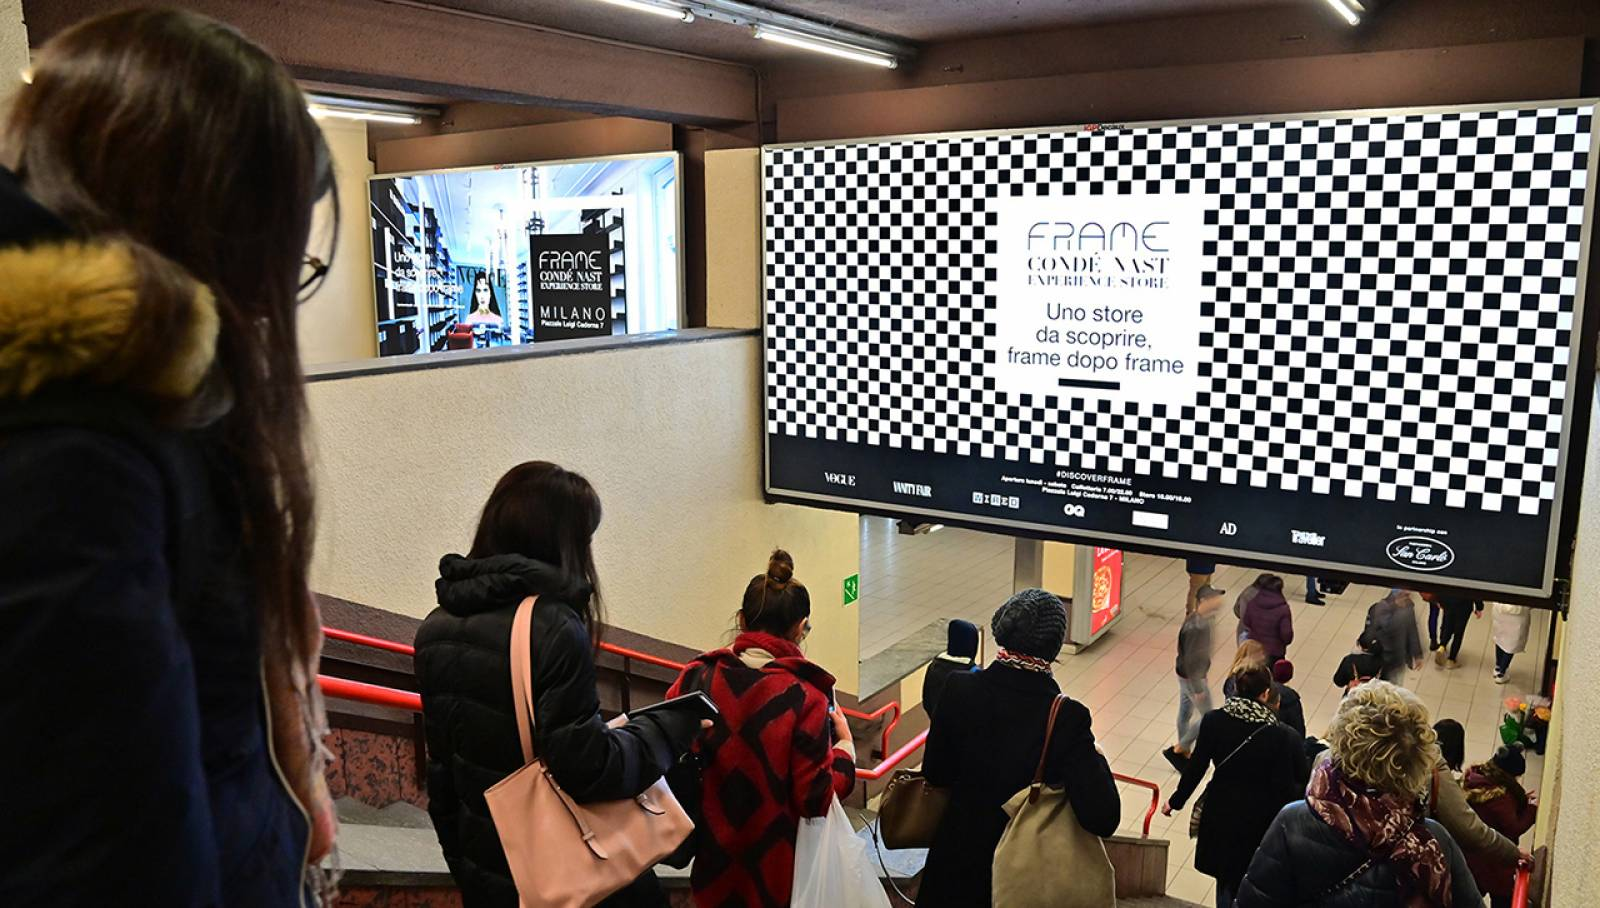 IGPDecaux OOH advertising in Milan Station Domination for Condé Nast Italia